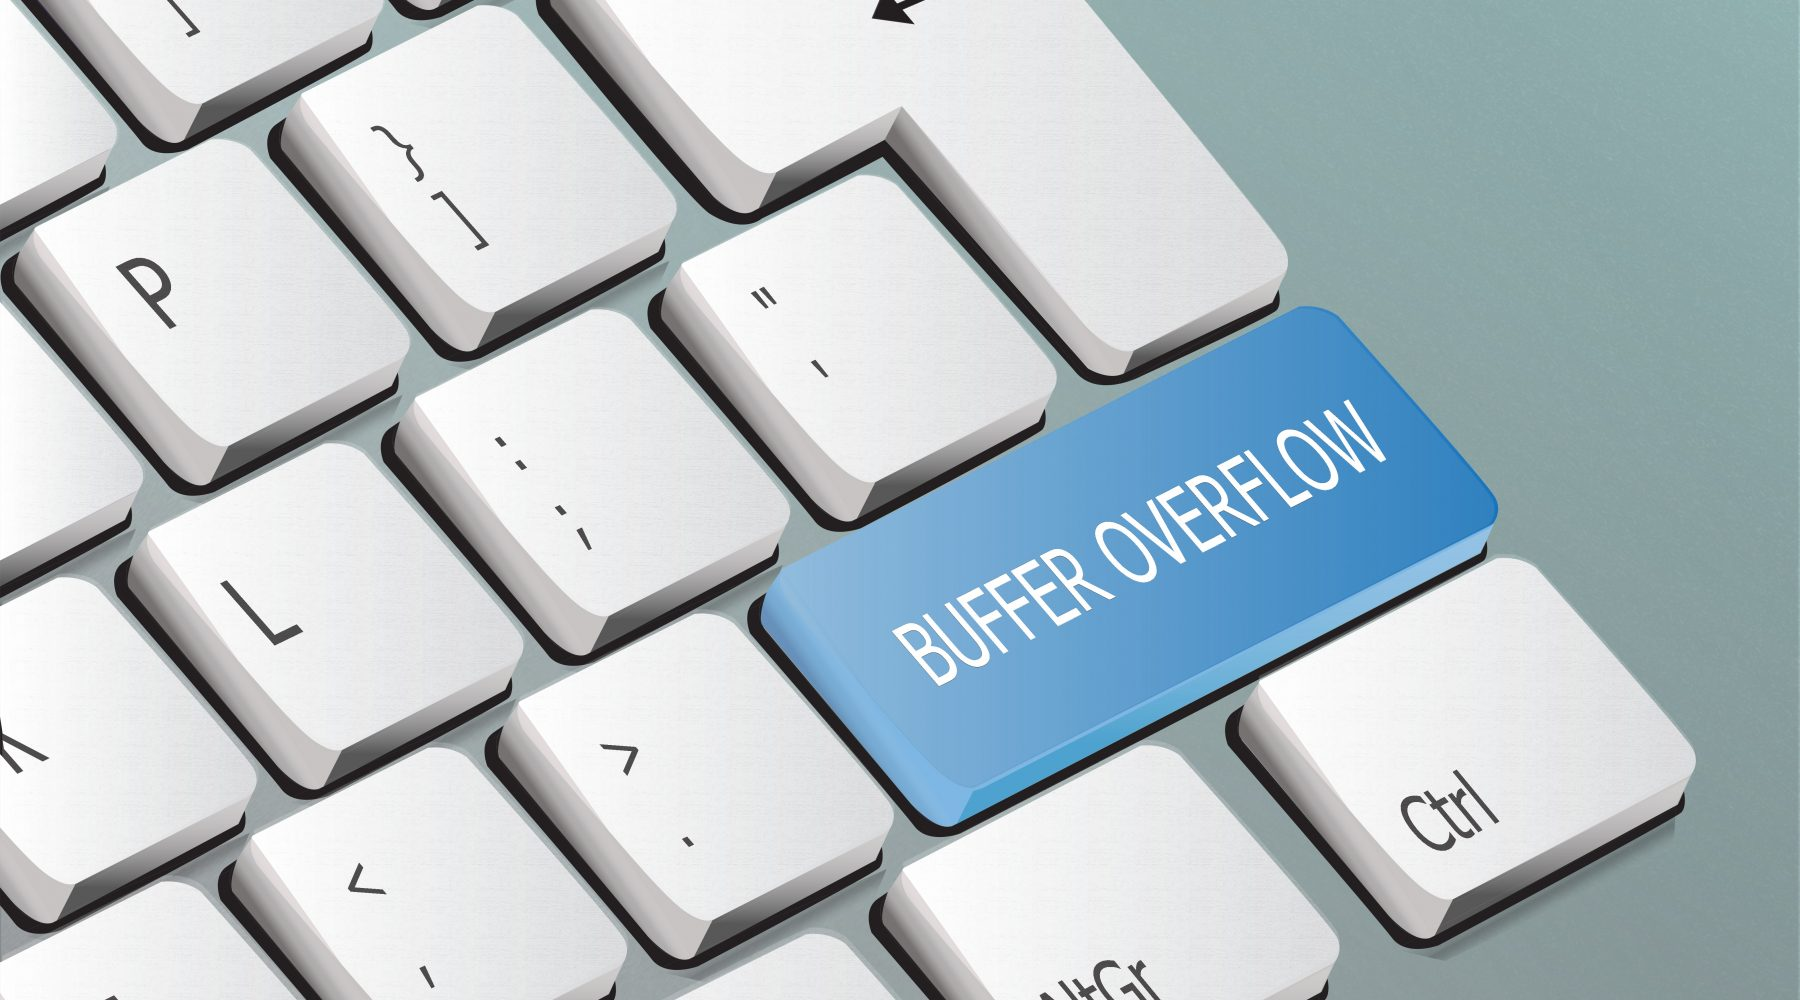 Finding a Buffer Overflow issue using a Map File